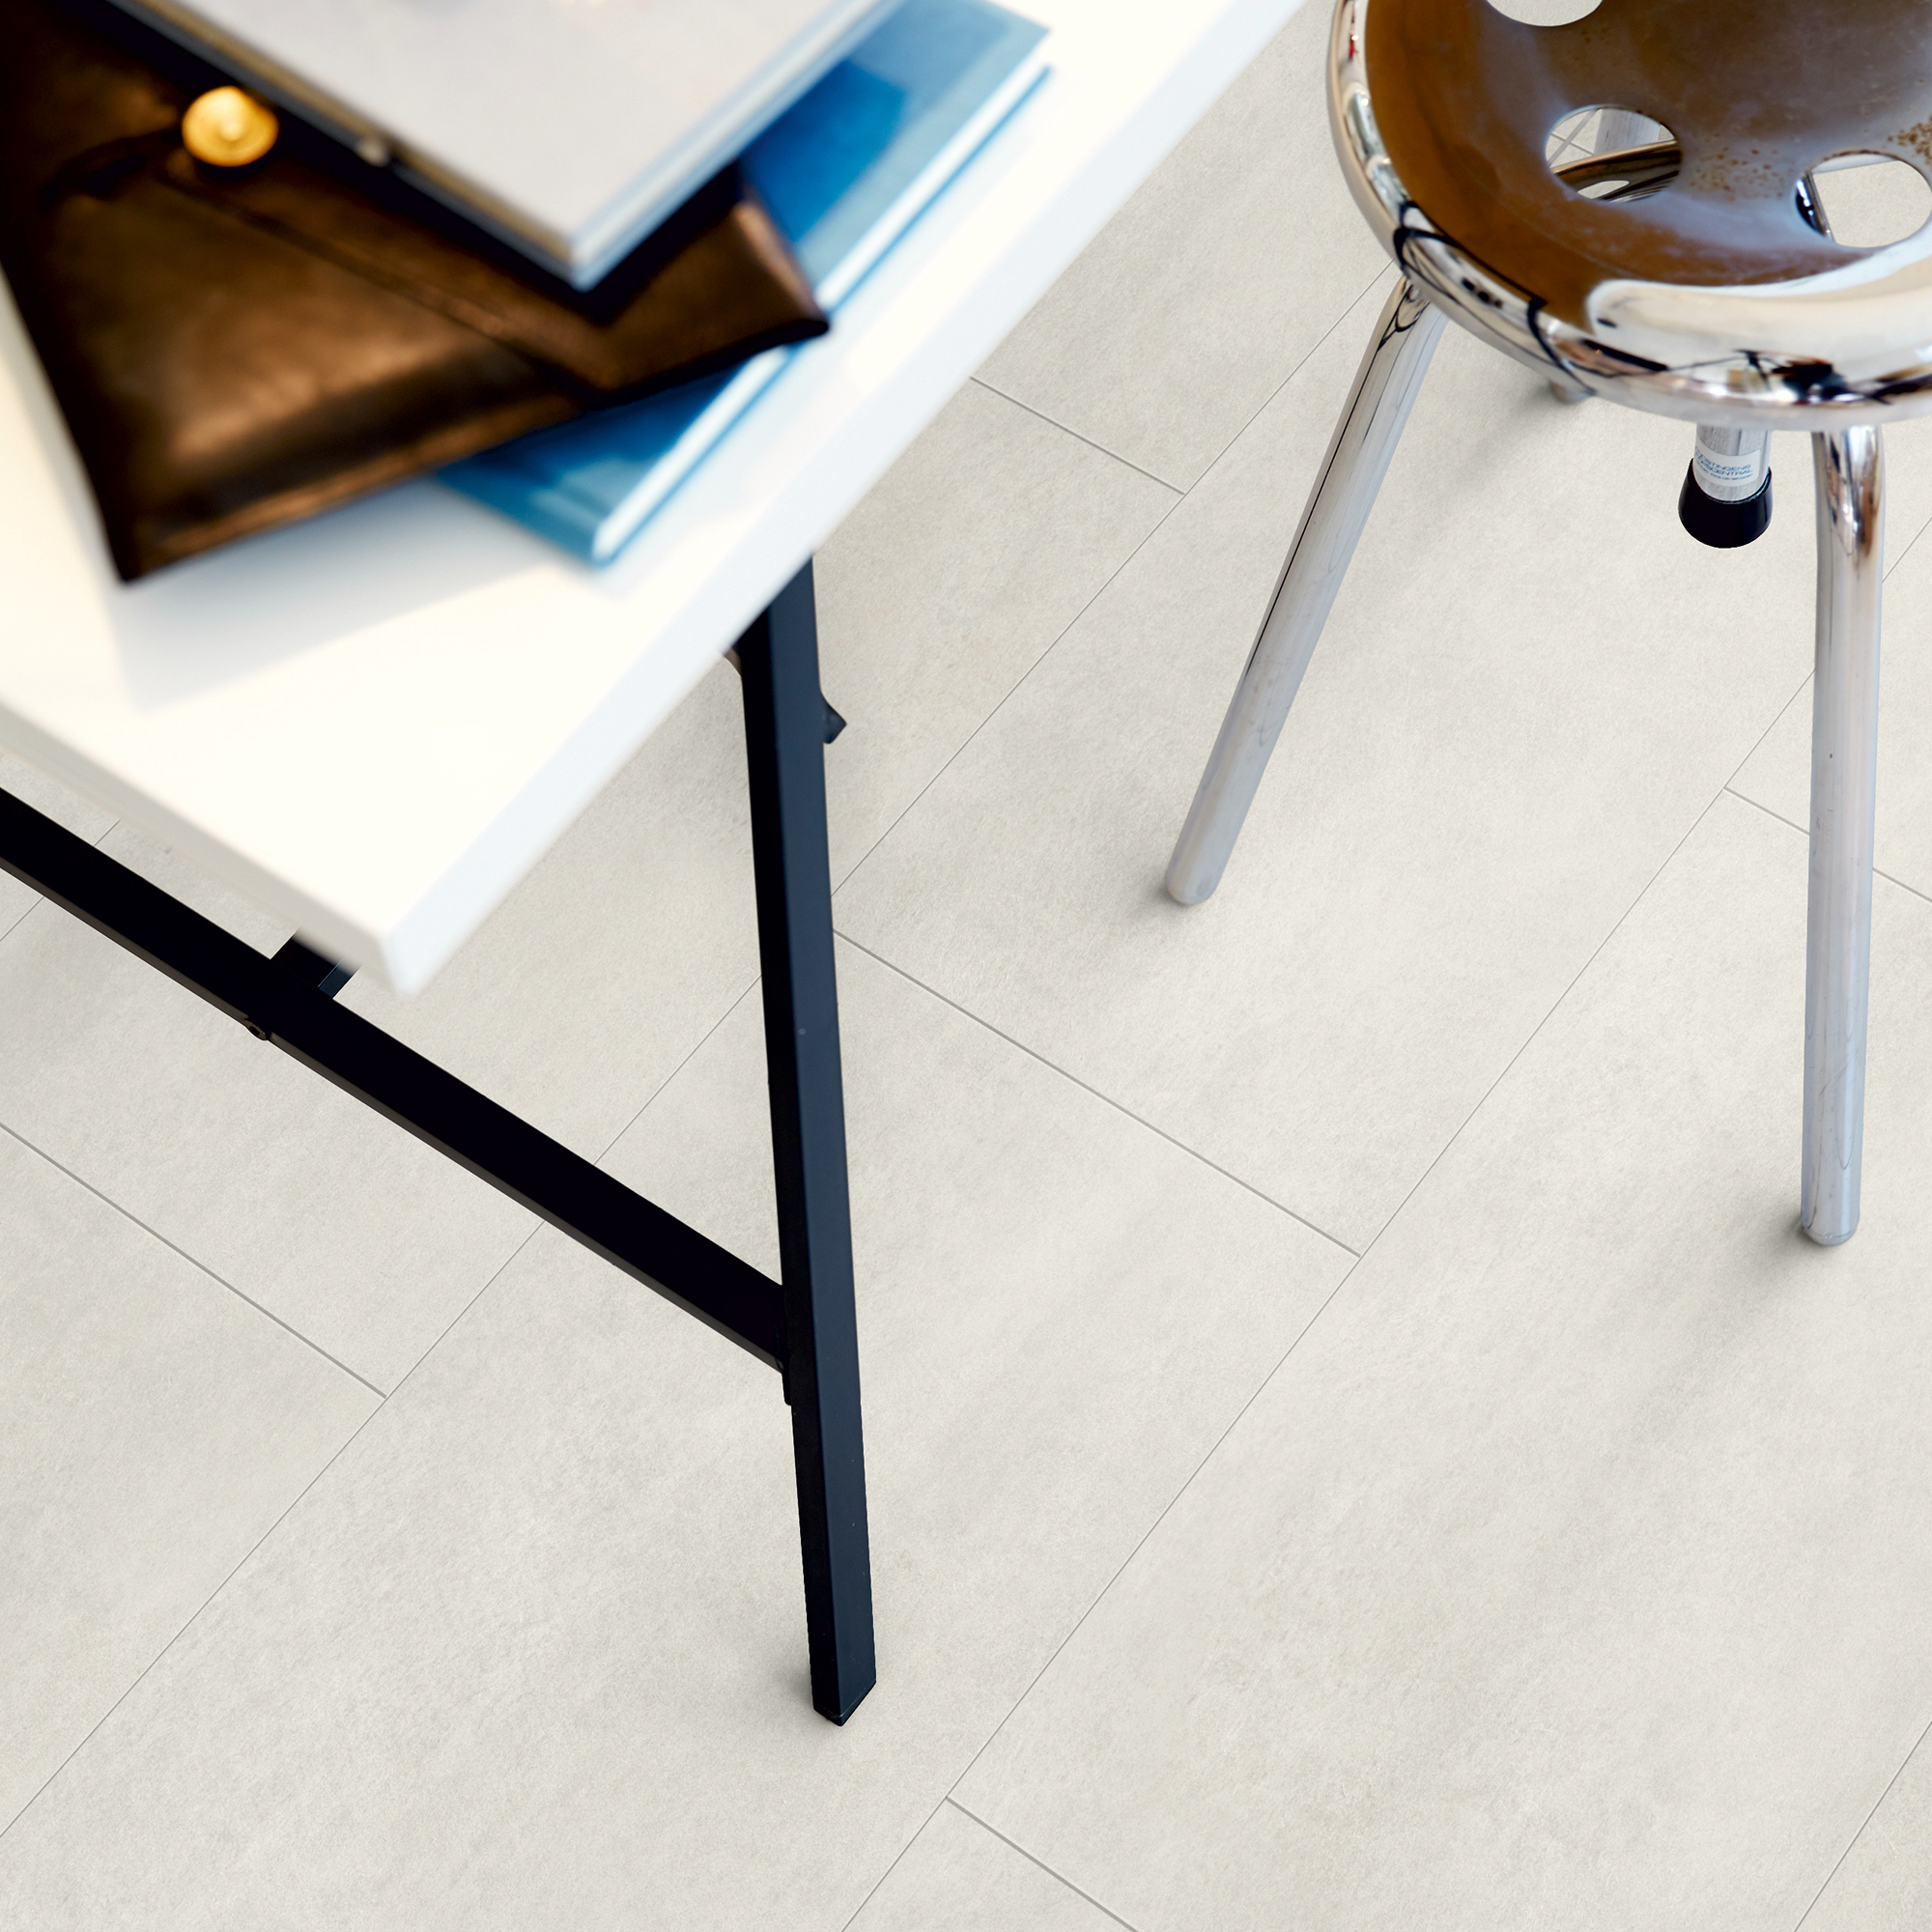 Vinylgolv Pergo Tile Light Concrete